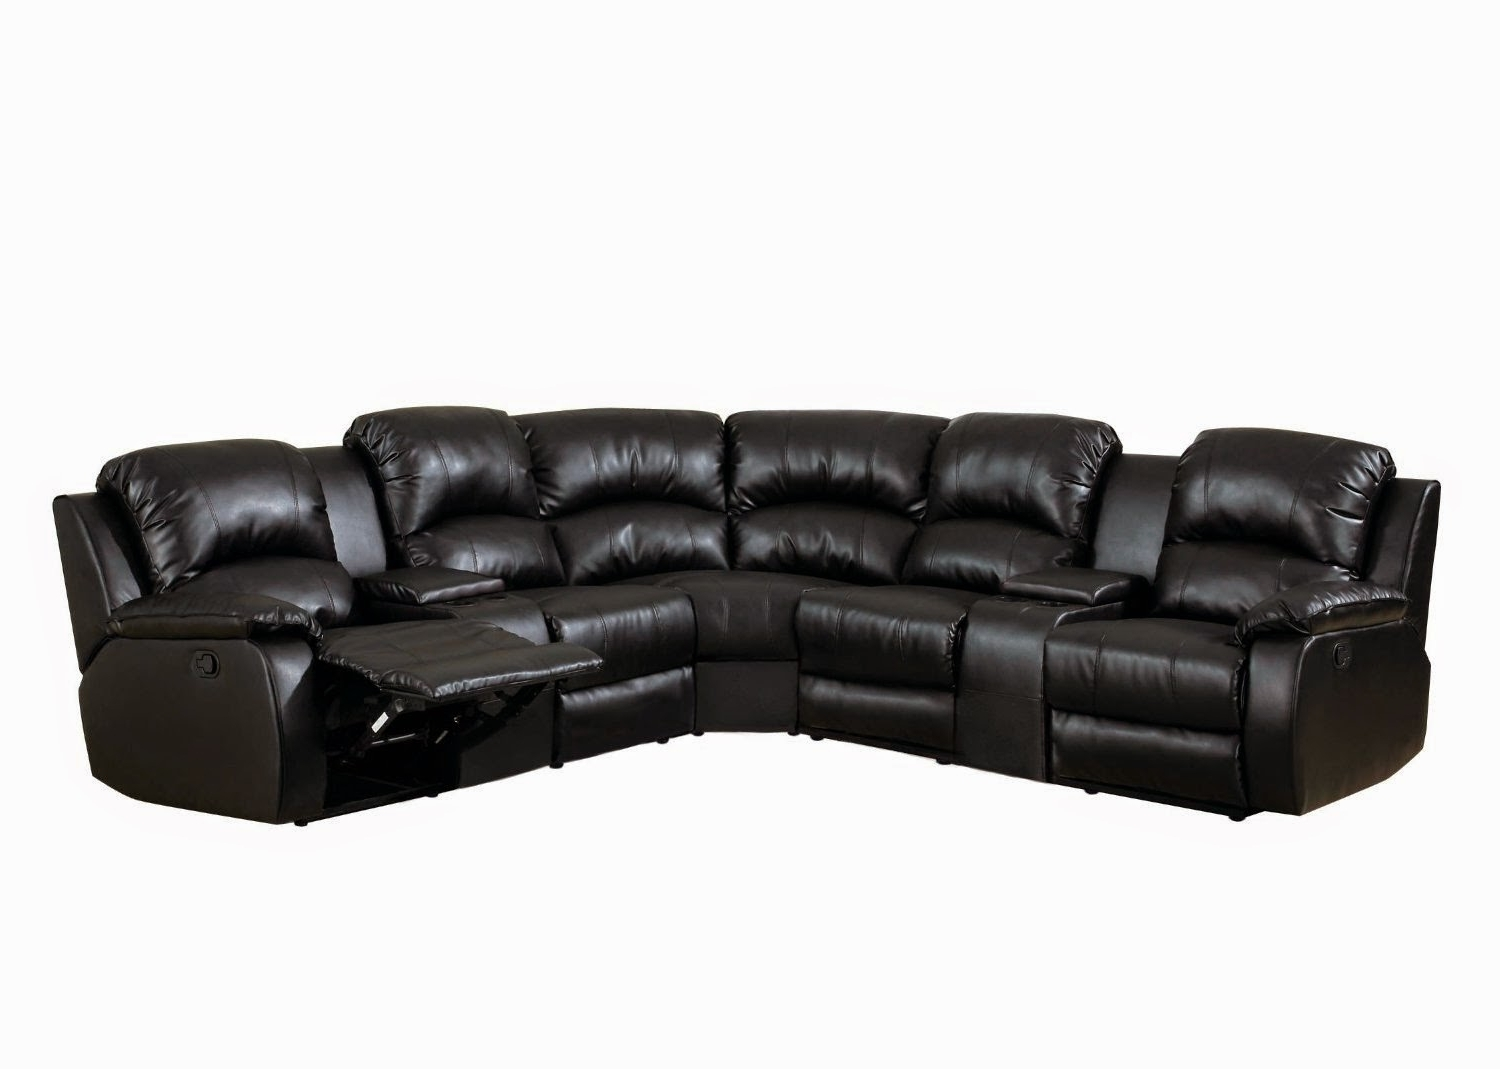 Economax Sectional Sofas In Well Known Black Leather Reclining Loveseat (View 14 of 15)